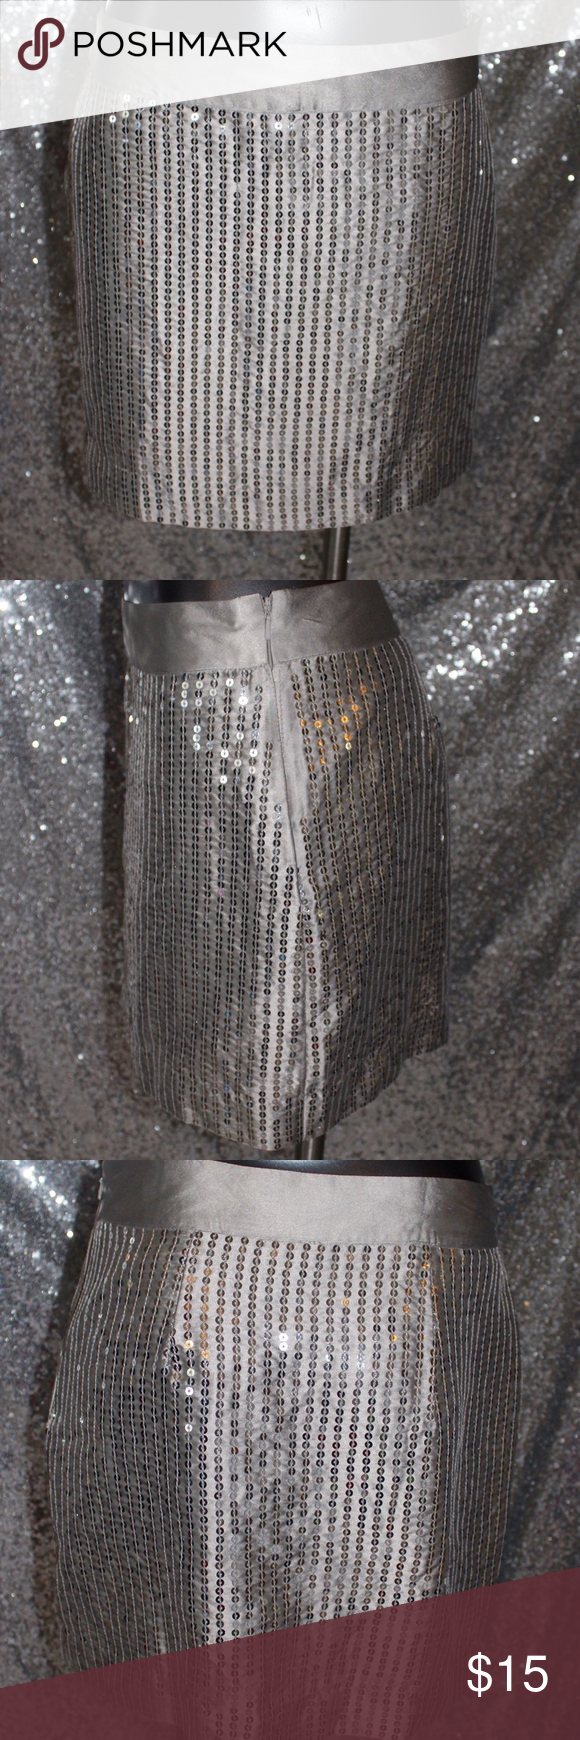 "Gap Outlet Silver Sequined Skirt Size 2 Pencil silhouette Gray Solid Embellished details Measurements 15"" Length Materials 100% Polyester GAP Skirts Mini"